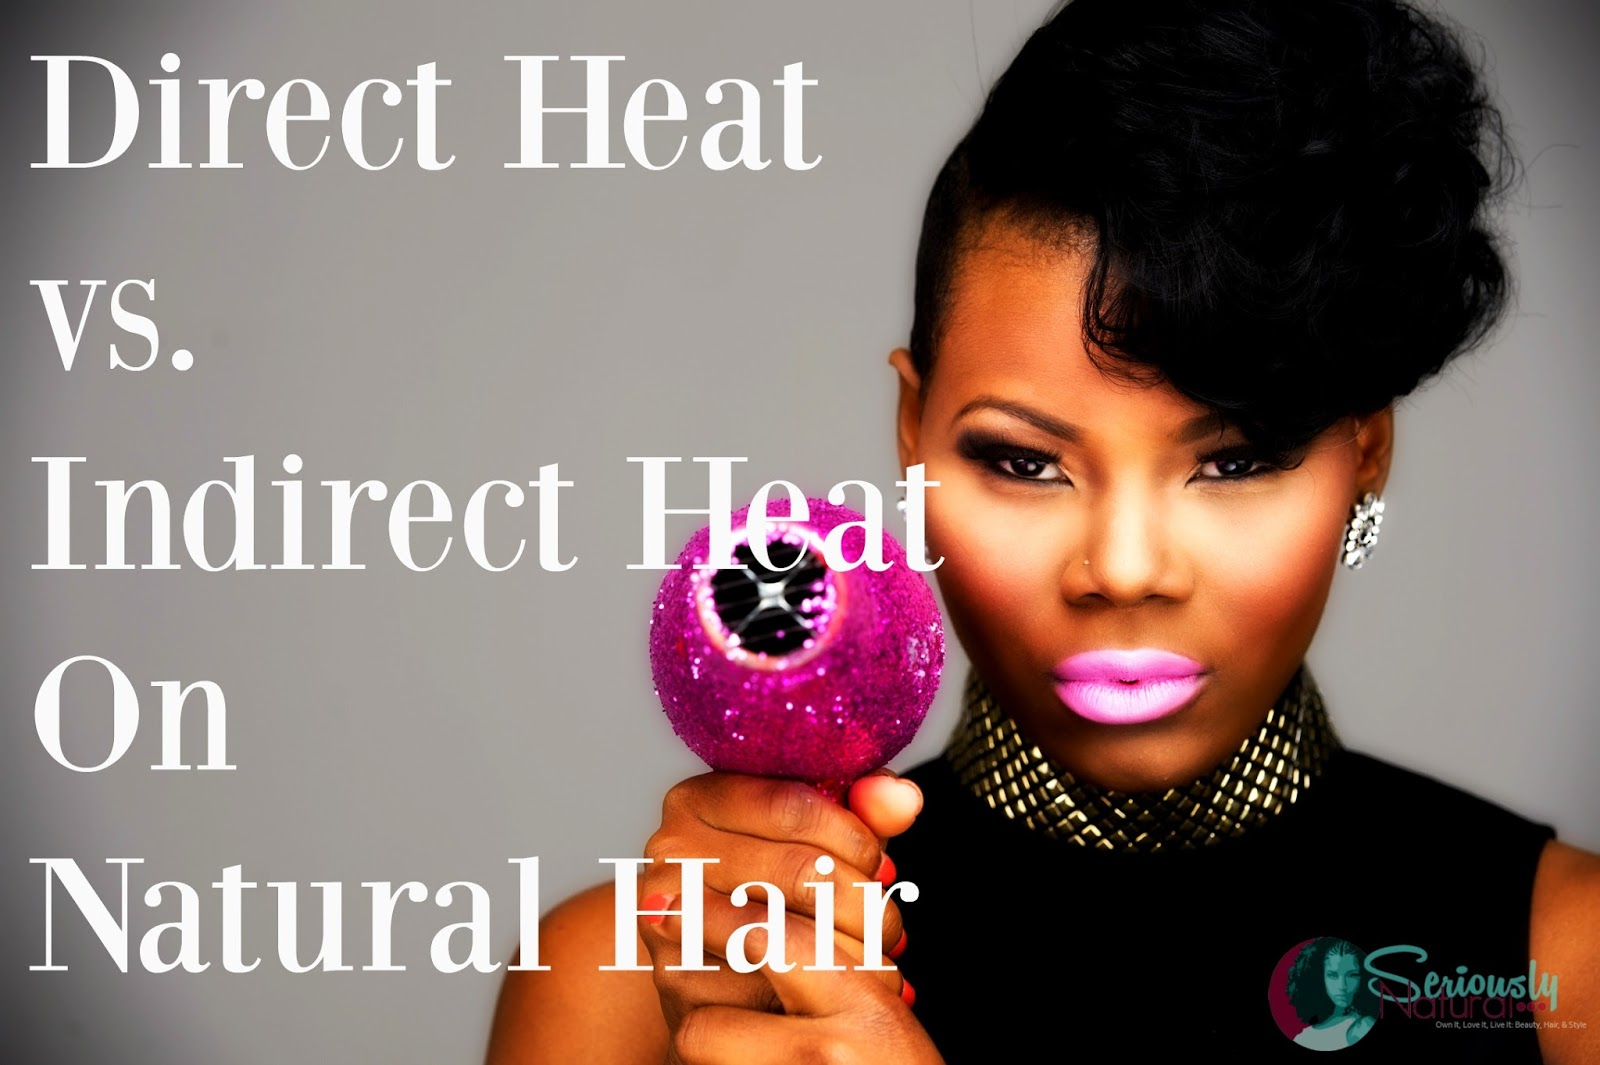 Direct Heat vs. Indirect Heat On Natural Hair & Which Is Bad for your natural hair. Our need for straight hair has not been kind to our delicate tresses.